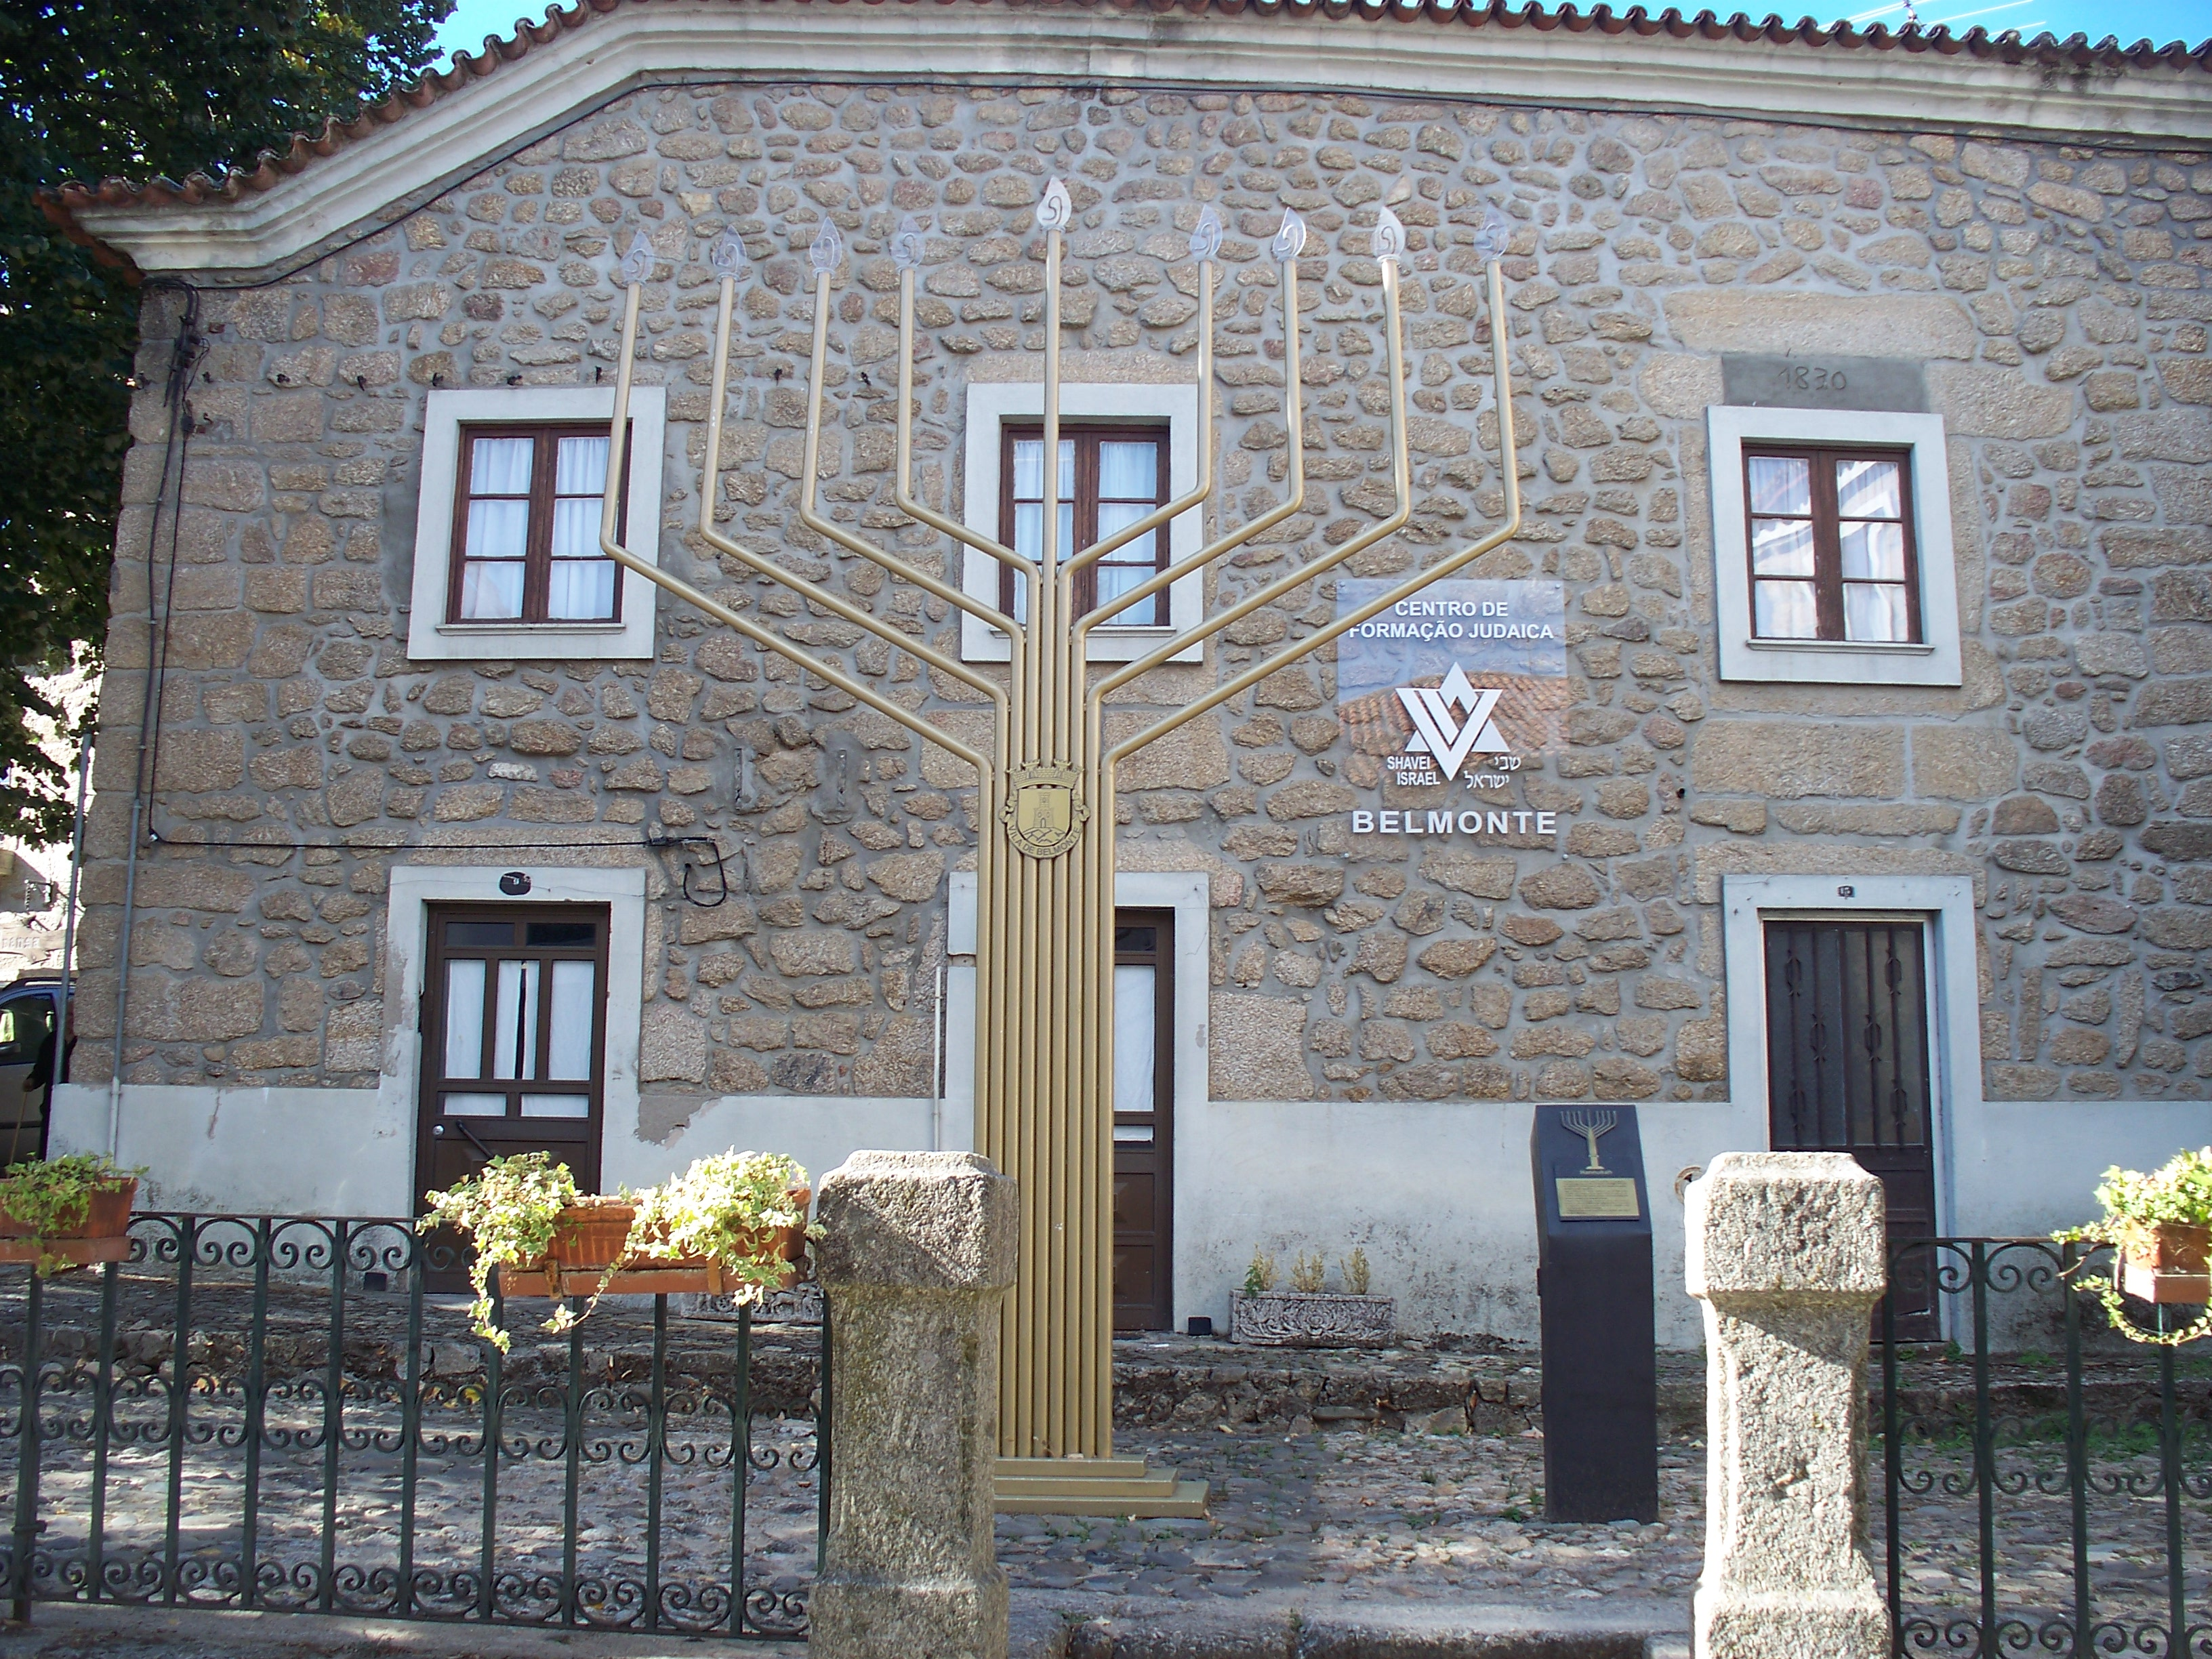 Both Belmonte and Castelo de Vide have active Jewish museums these days.